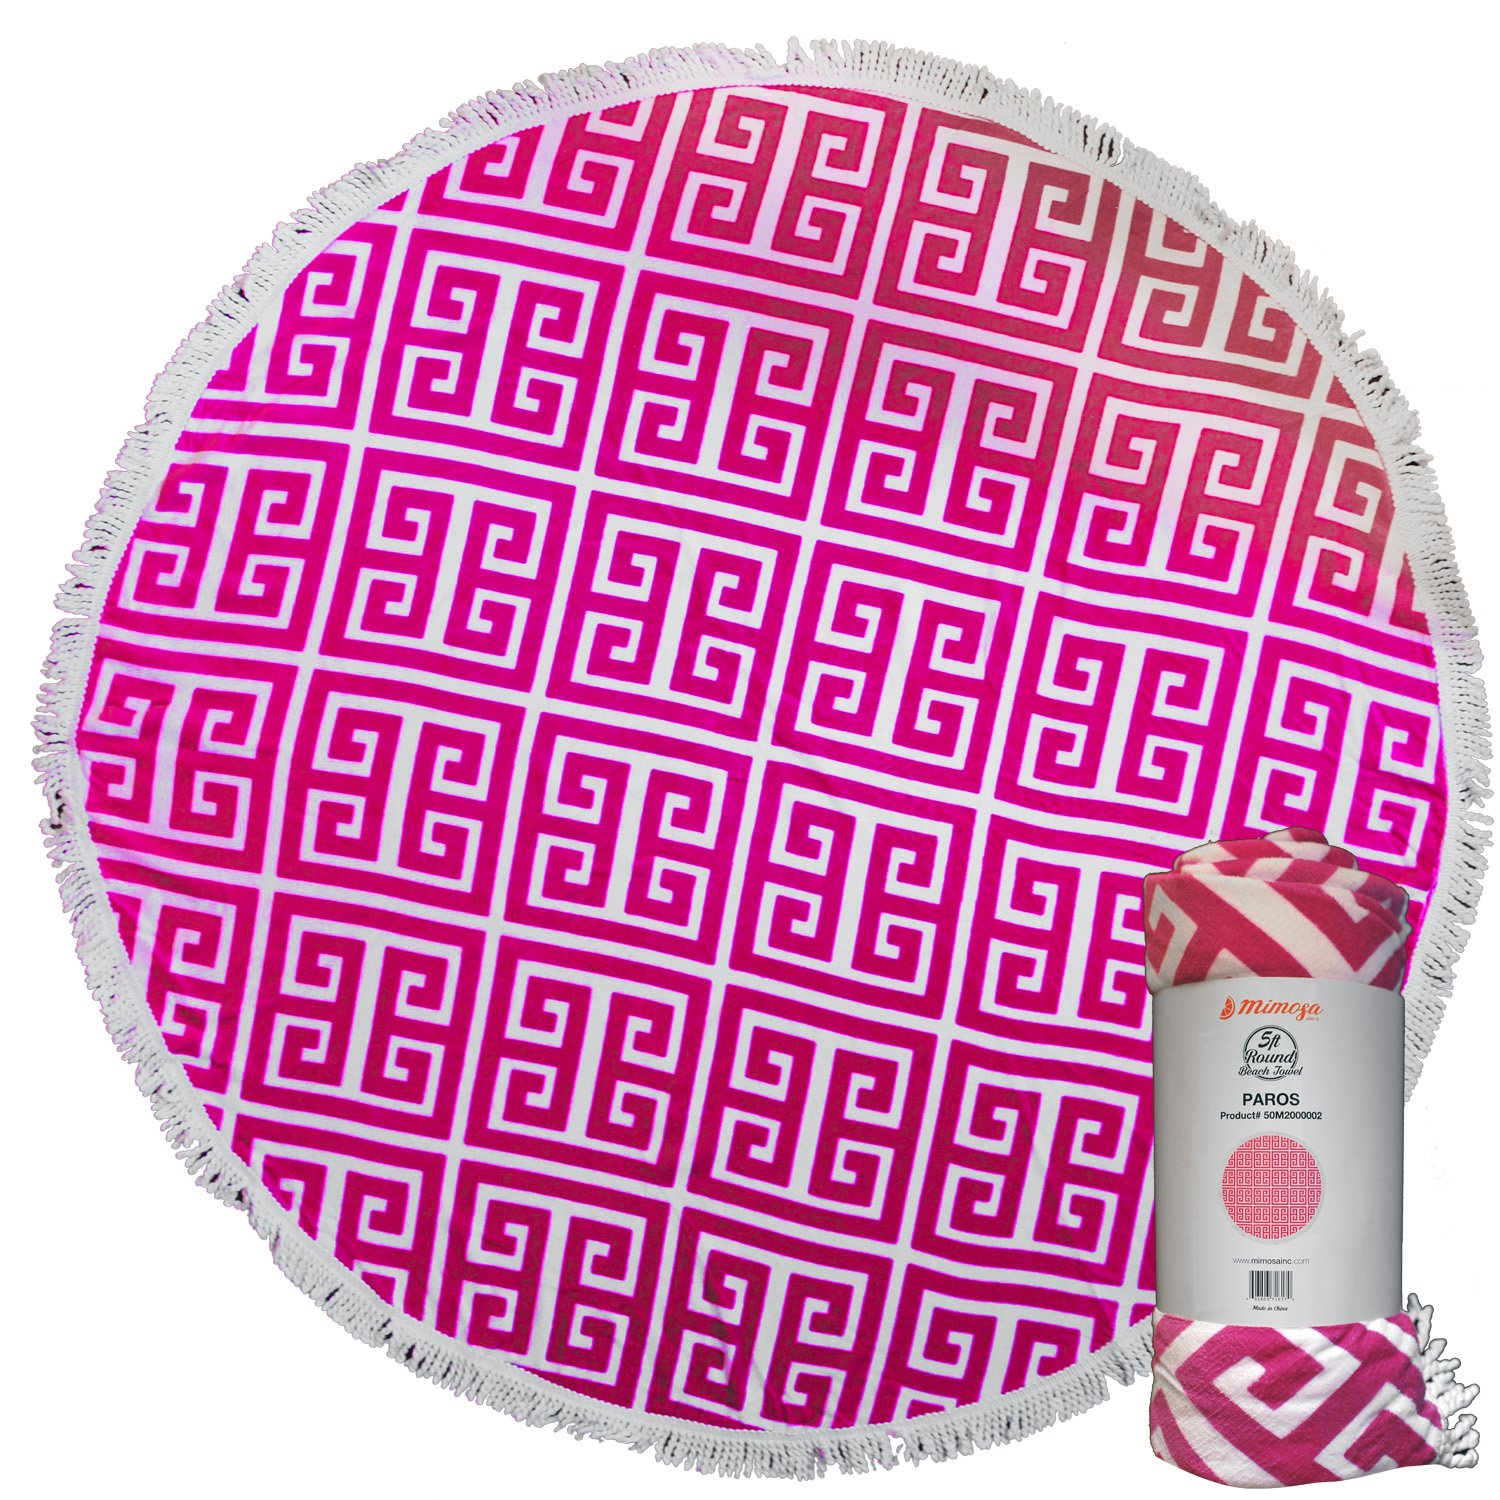 Mimosa Inc Round Beach Towel Patriot 5ft Pool Towel Ultra Plush 100/% Cotton Terry Velour Throw Mat With Thick Artisan Tassels Bright Colors Machine Washable Designed In California 50M2000001 11 Options